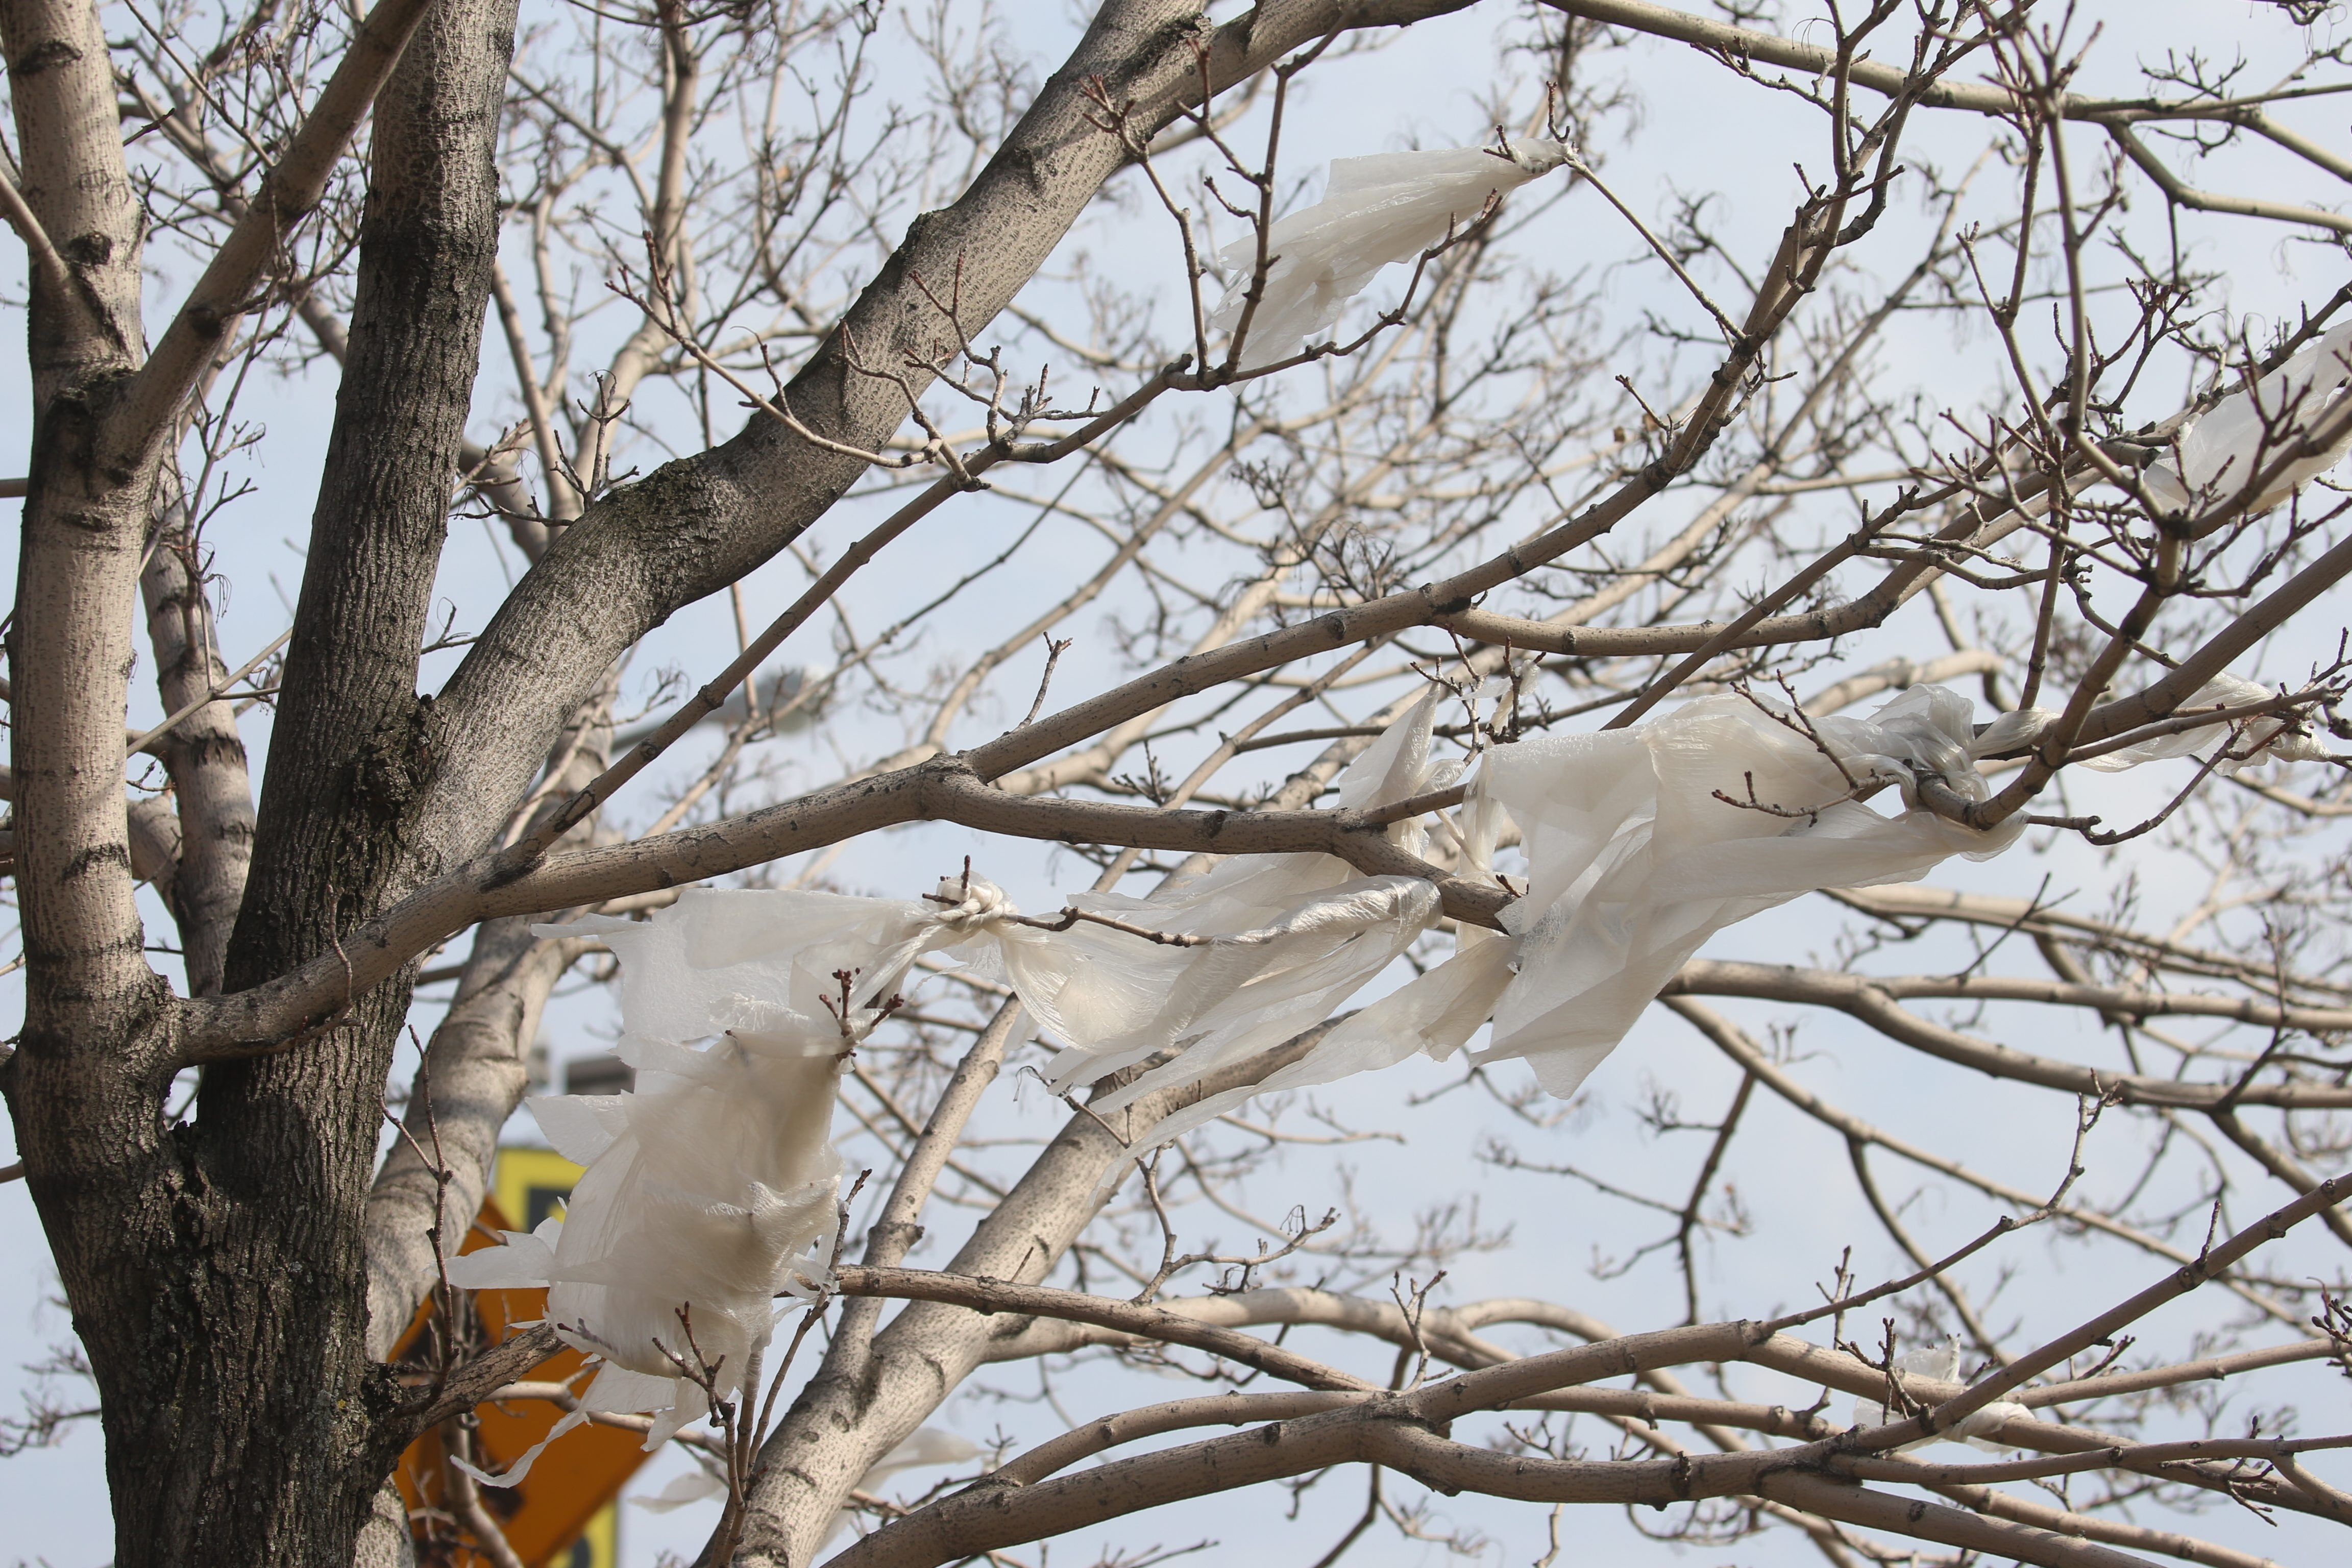 Part of the environmental impact of plastic bags was evident Wednesday as some of them were tangled in a tree on Seneca Street by I-190. (John Hickey/Buffalo News)